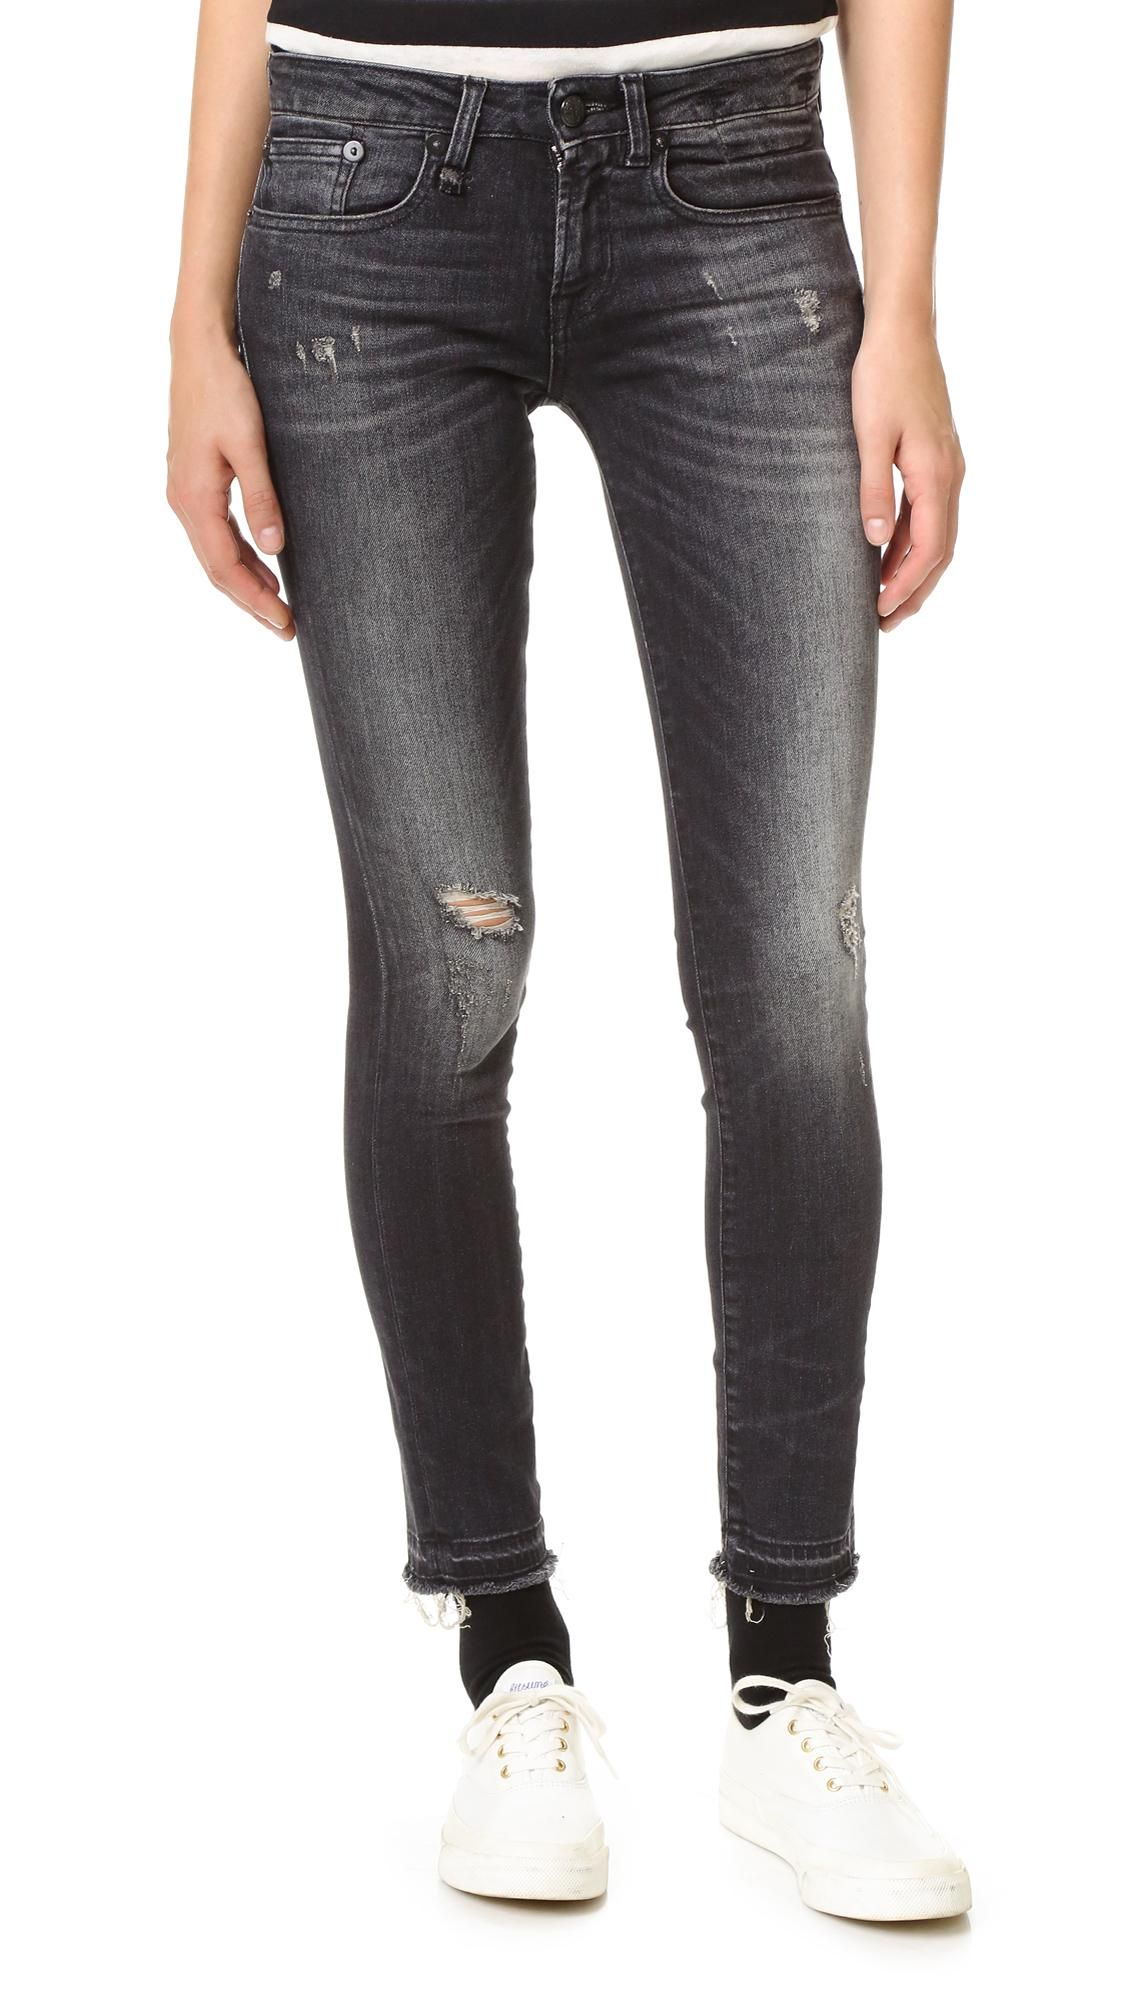 Pin by Ashley Boehmer on To buy   Destroyed jeans, Women